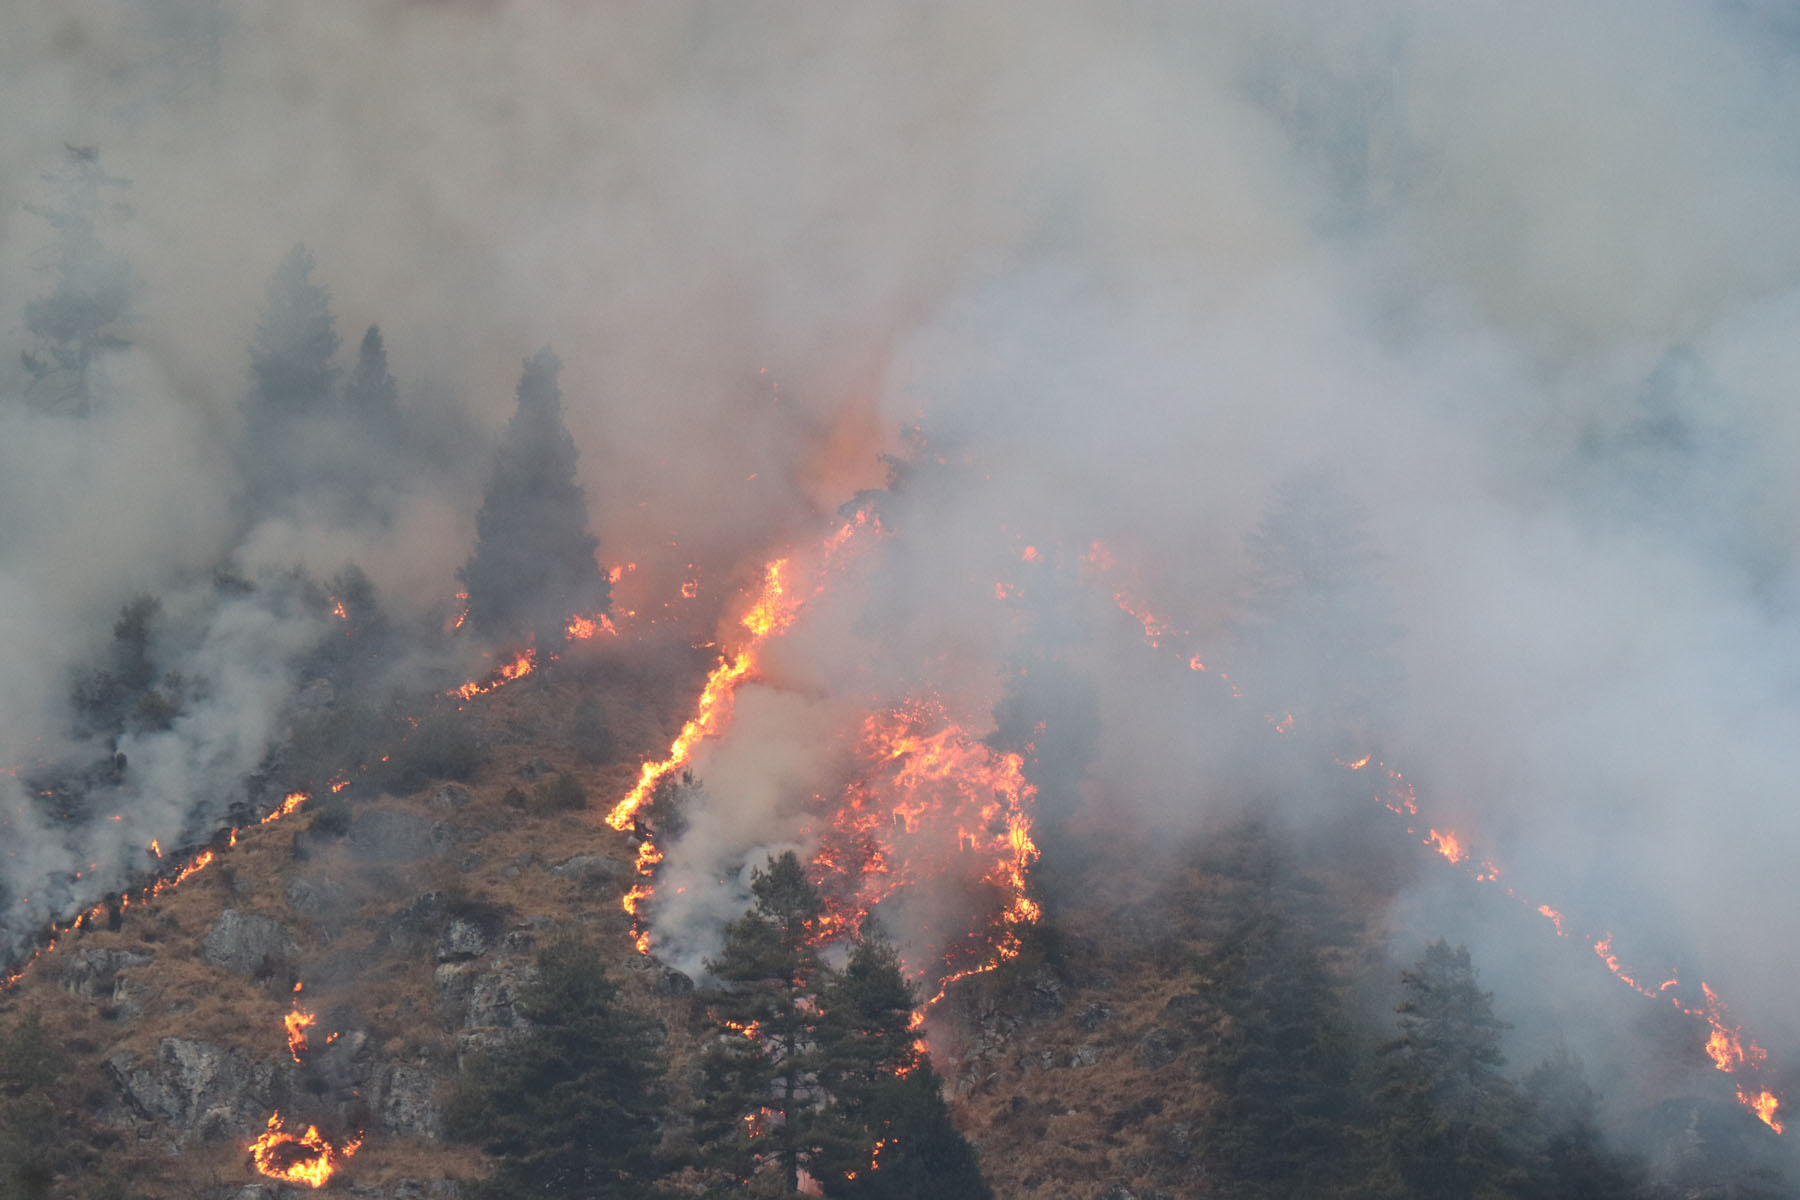 A forest fire has been raging on uncontrolled in Manang District for a month. The wildfire has so far destroyed 700 hectares of the forest rich in biodiversity.